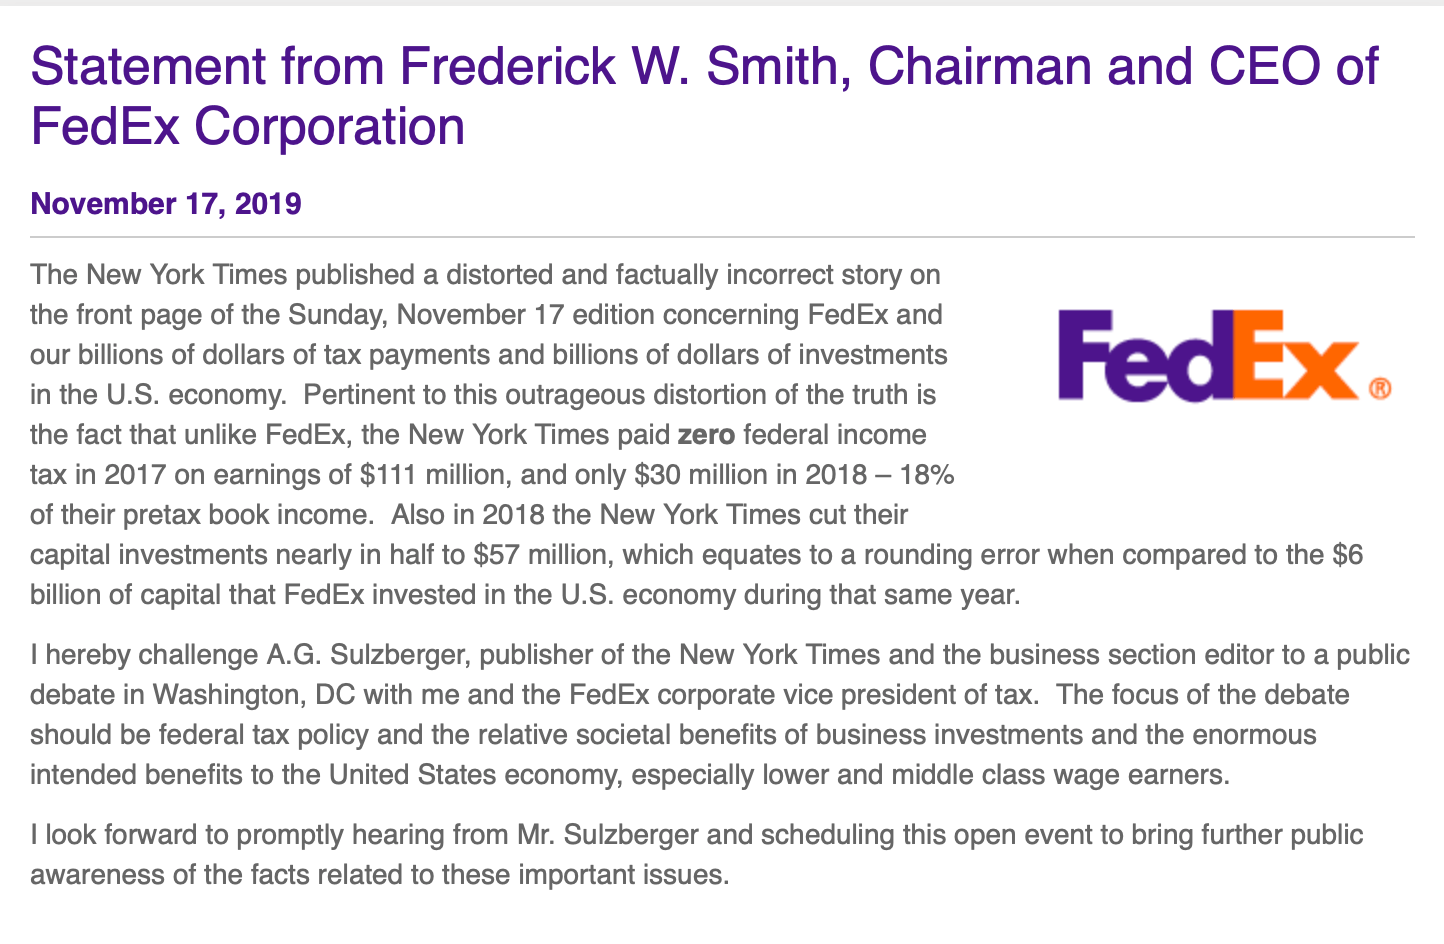 FedEx CEO calls for debate over 'distorted' New York Times article